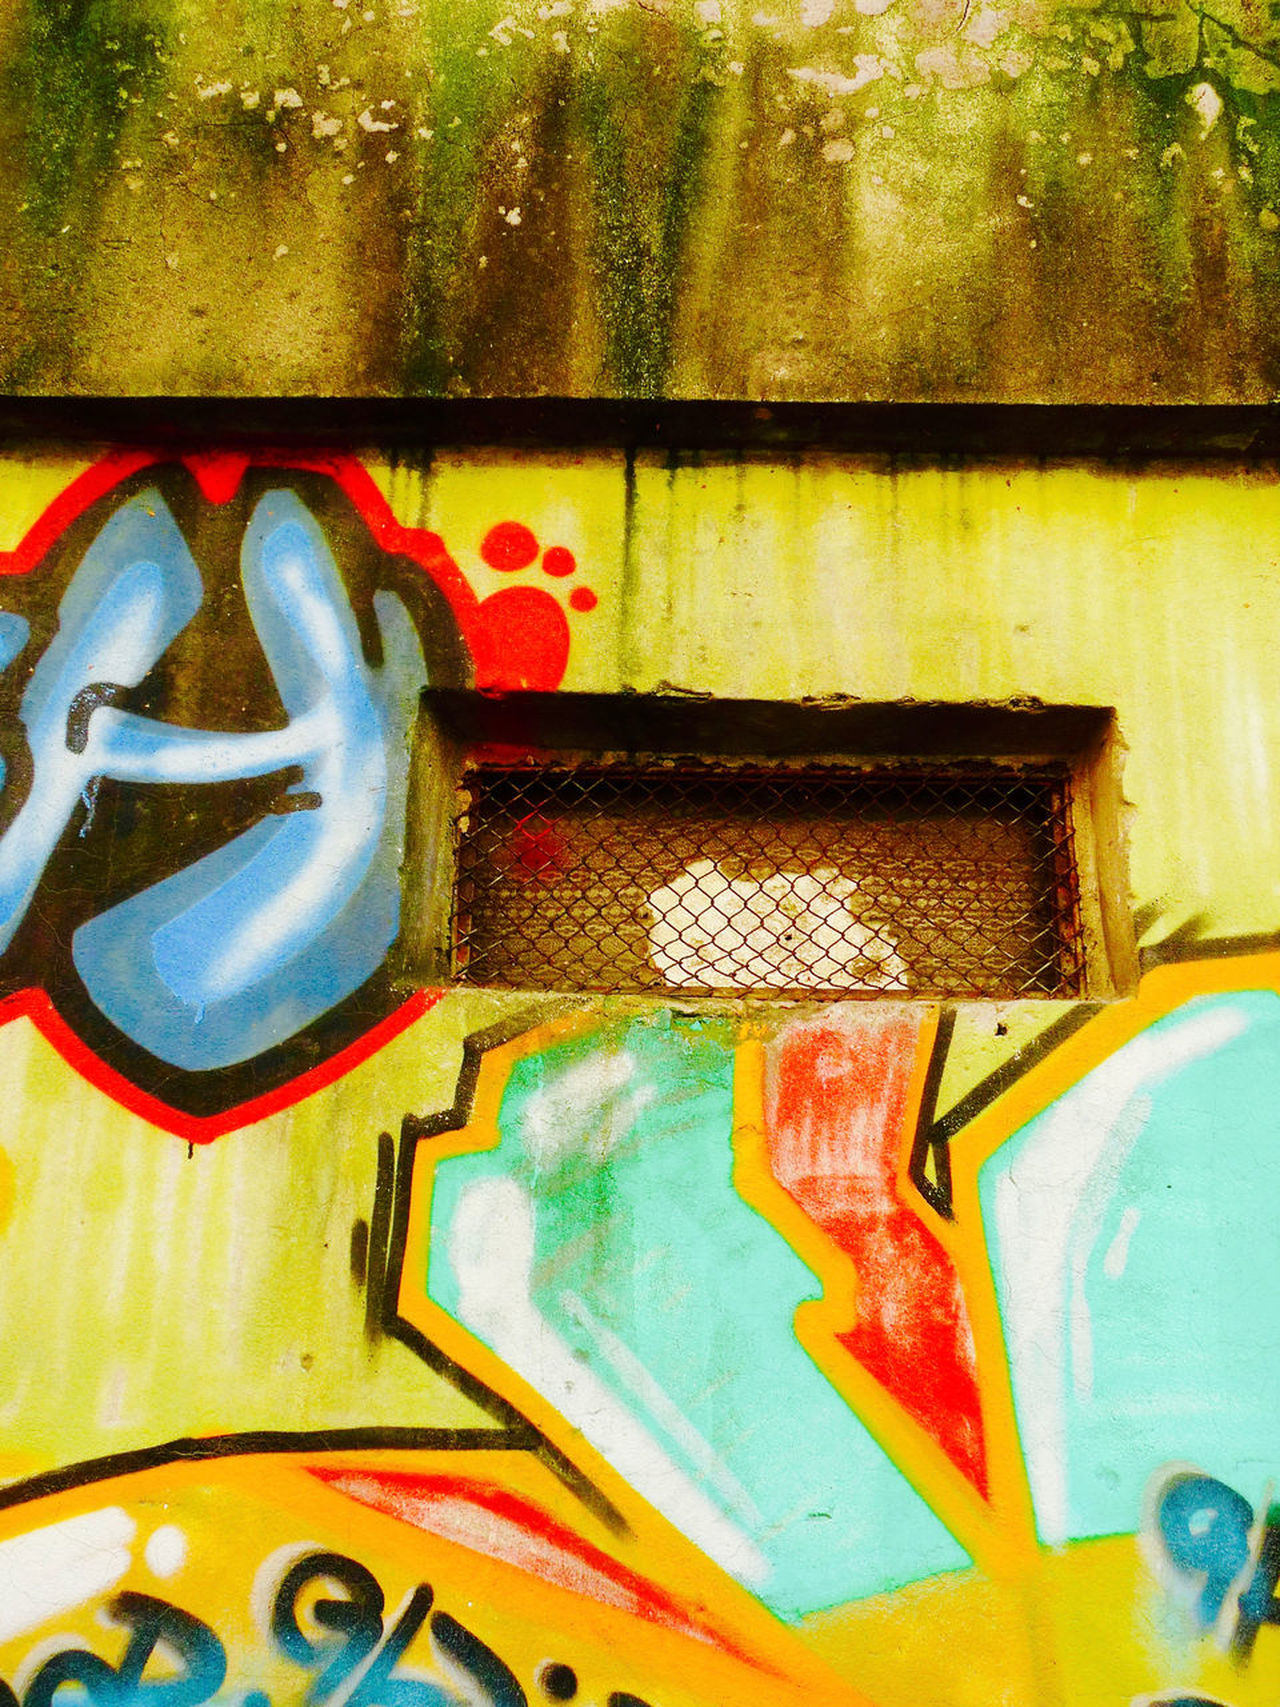 Building Exterior Built Structure Decay Ecological Interaction Grille Moss Multi Colored No People Outdoors Paint Graffito Street Art Yellow